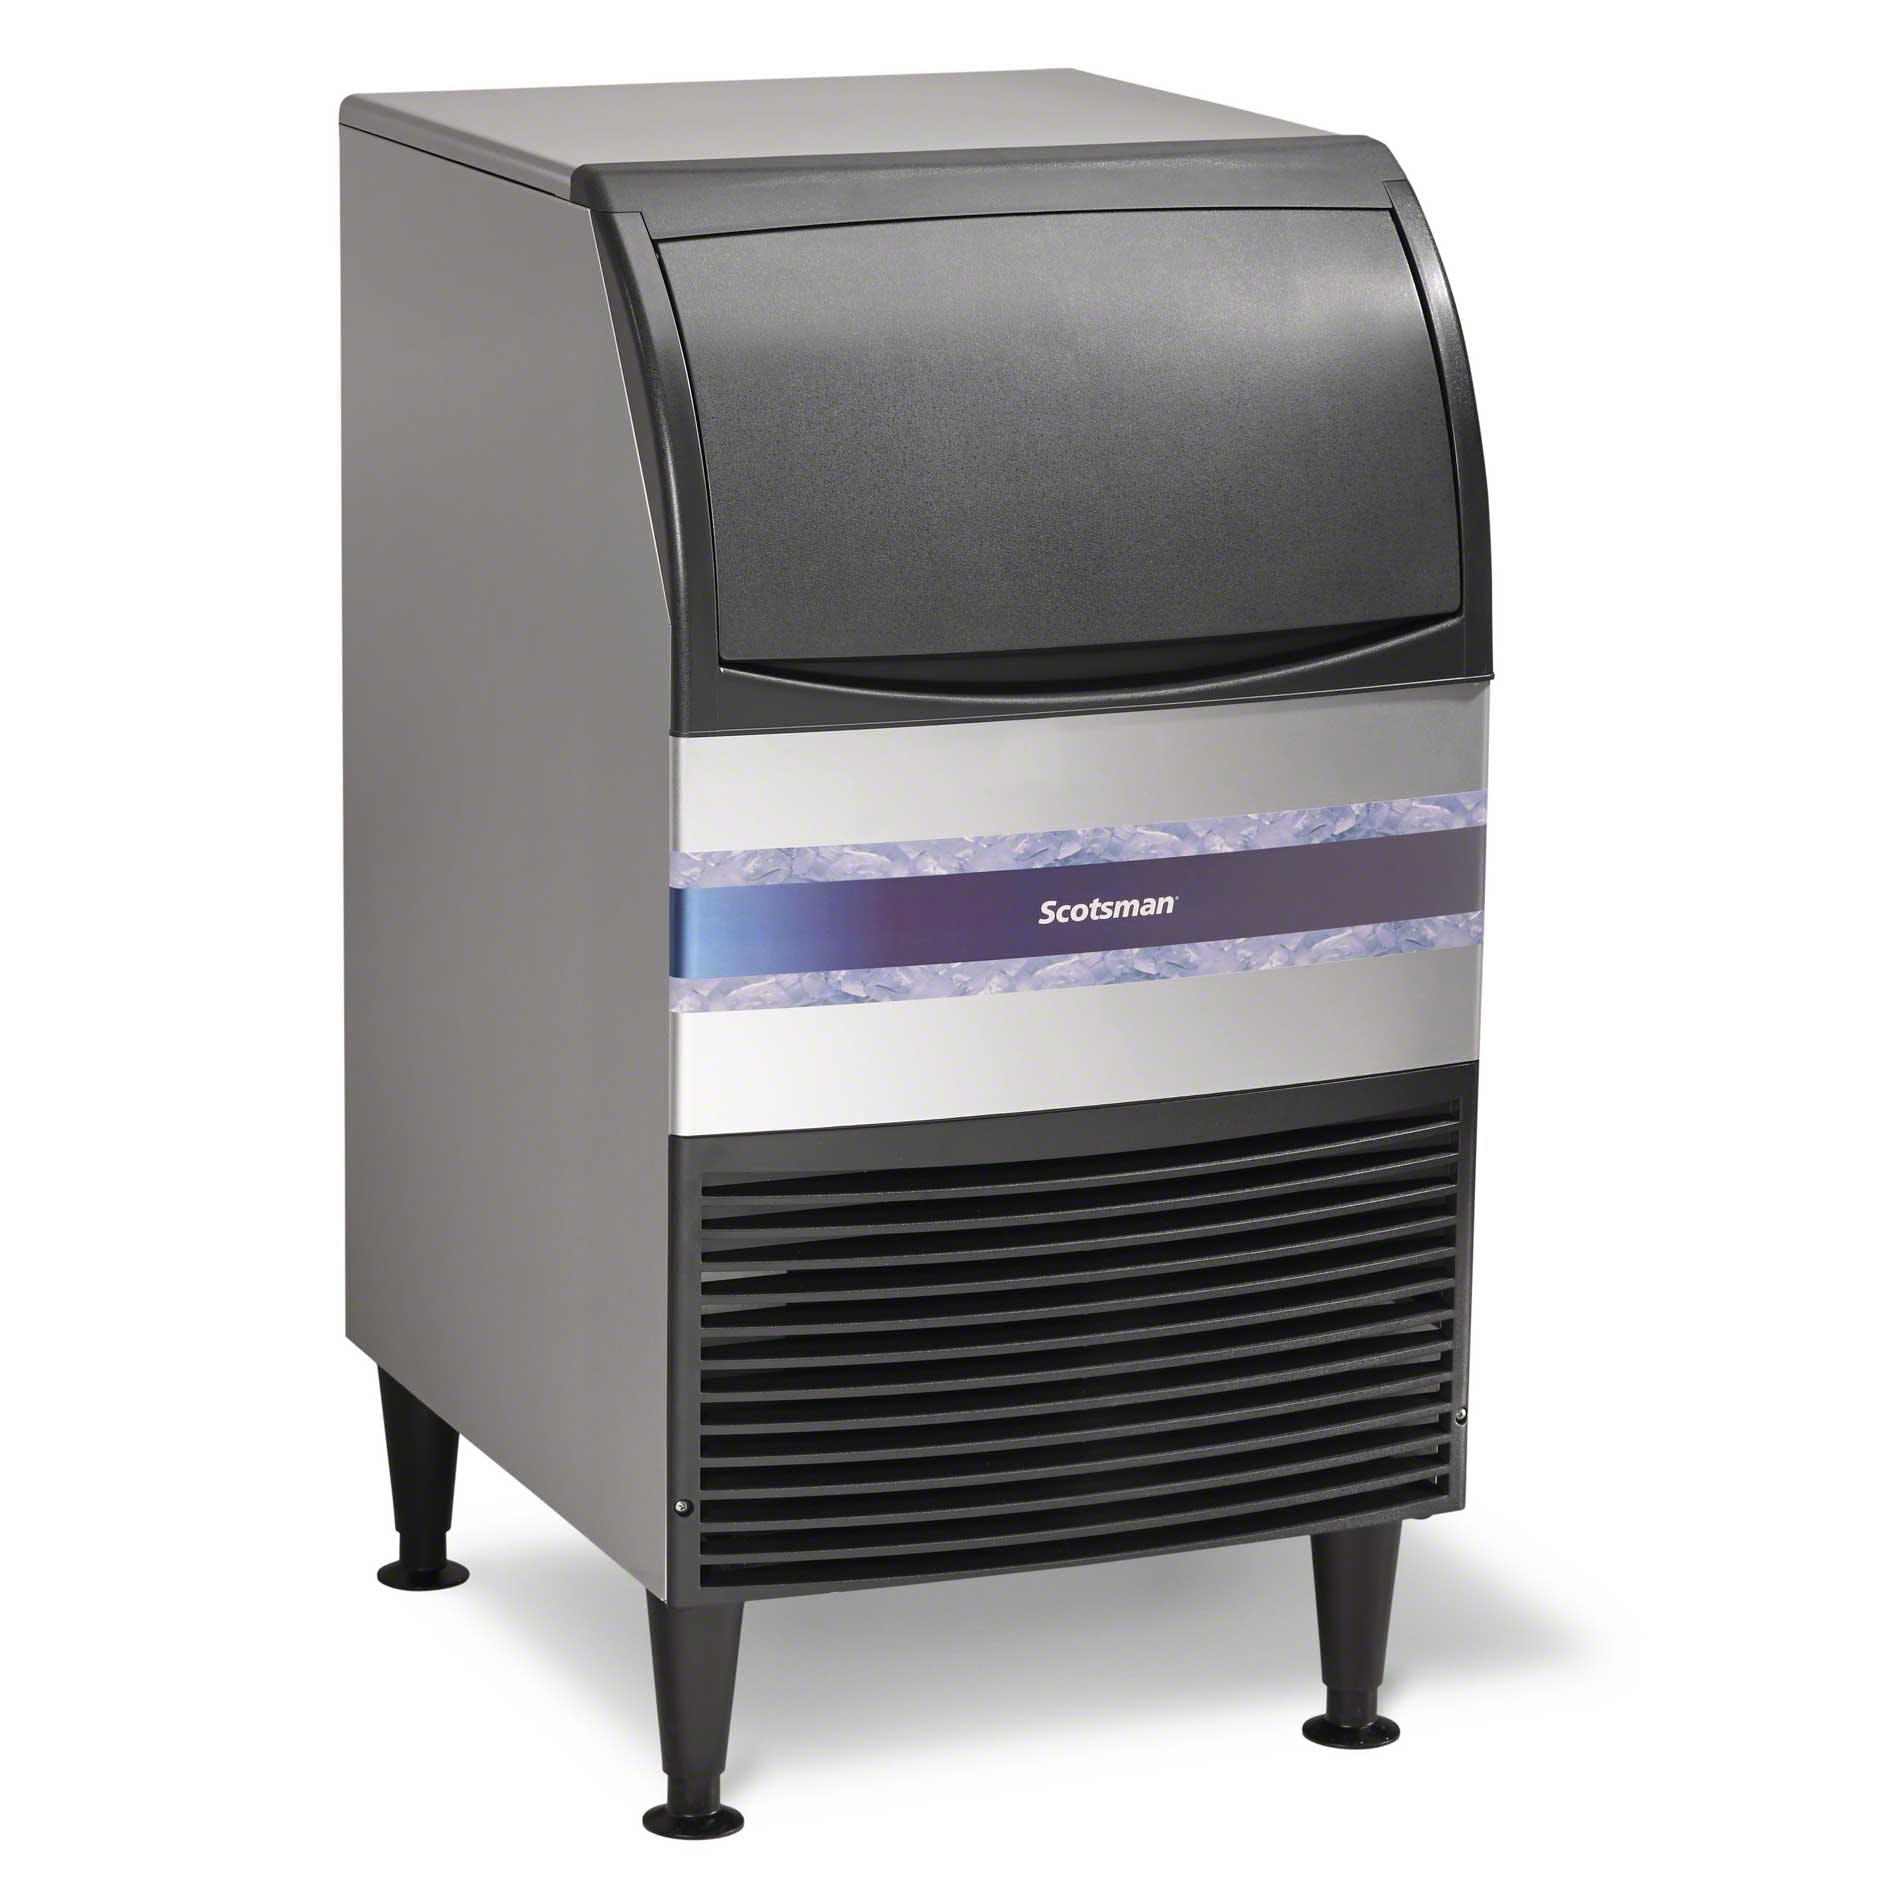 Scotsman - CU0920MA-1 100 lb Self-Contained Undercounter Cube Ice Machine- Essential™ Series Ice machine sold by Food Service Warehouse